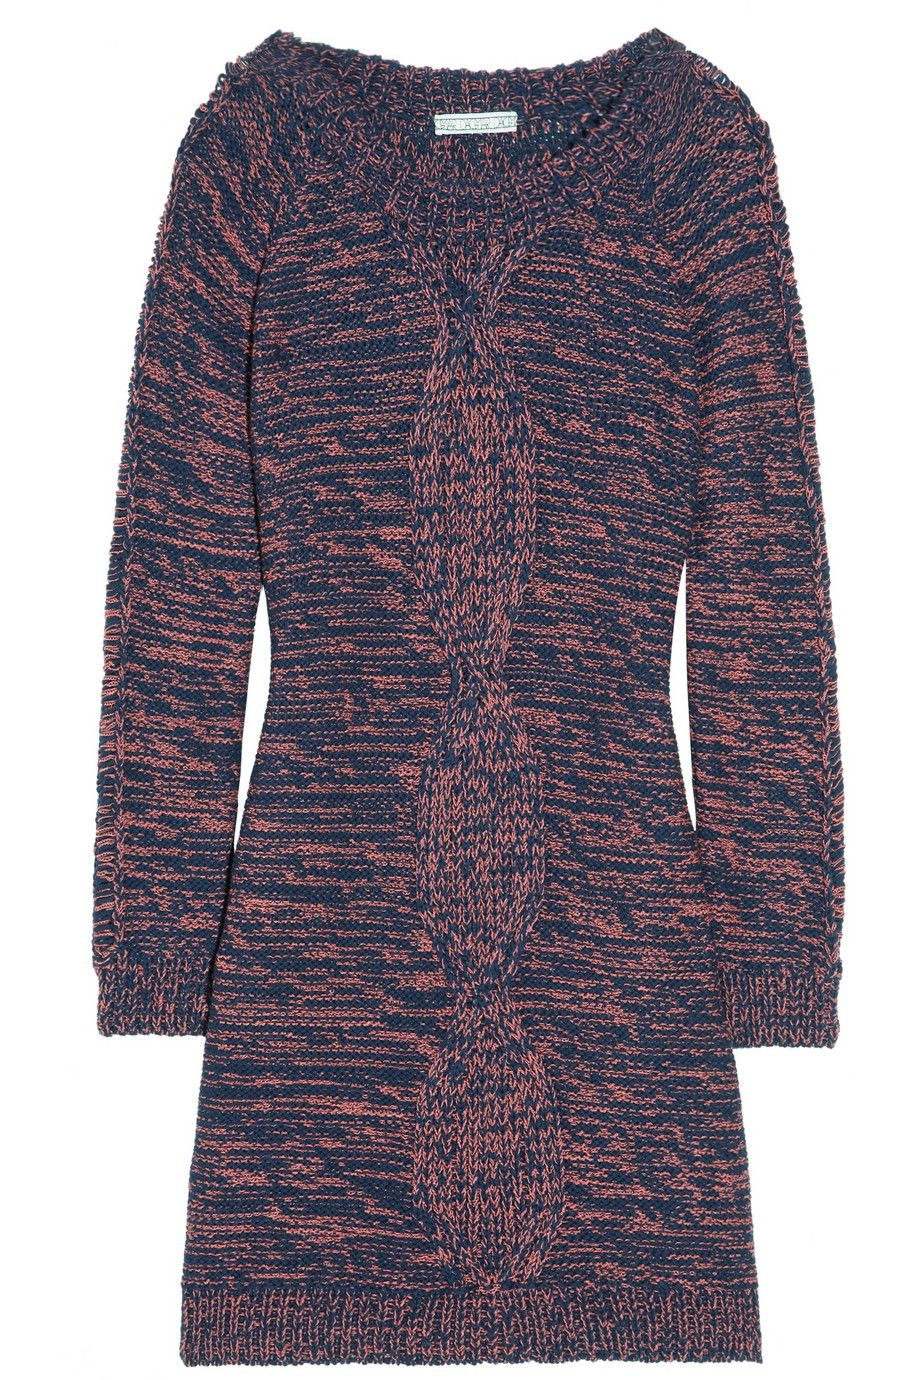 Dagmar | Gerdy cable-knit sweater dress | NET-A-PORTER.COM